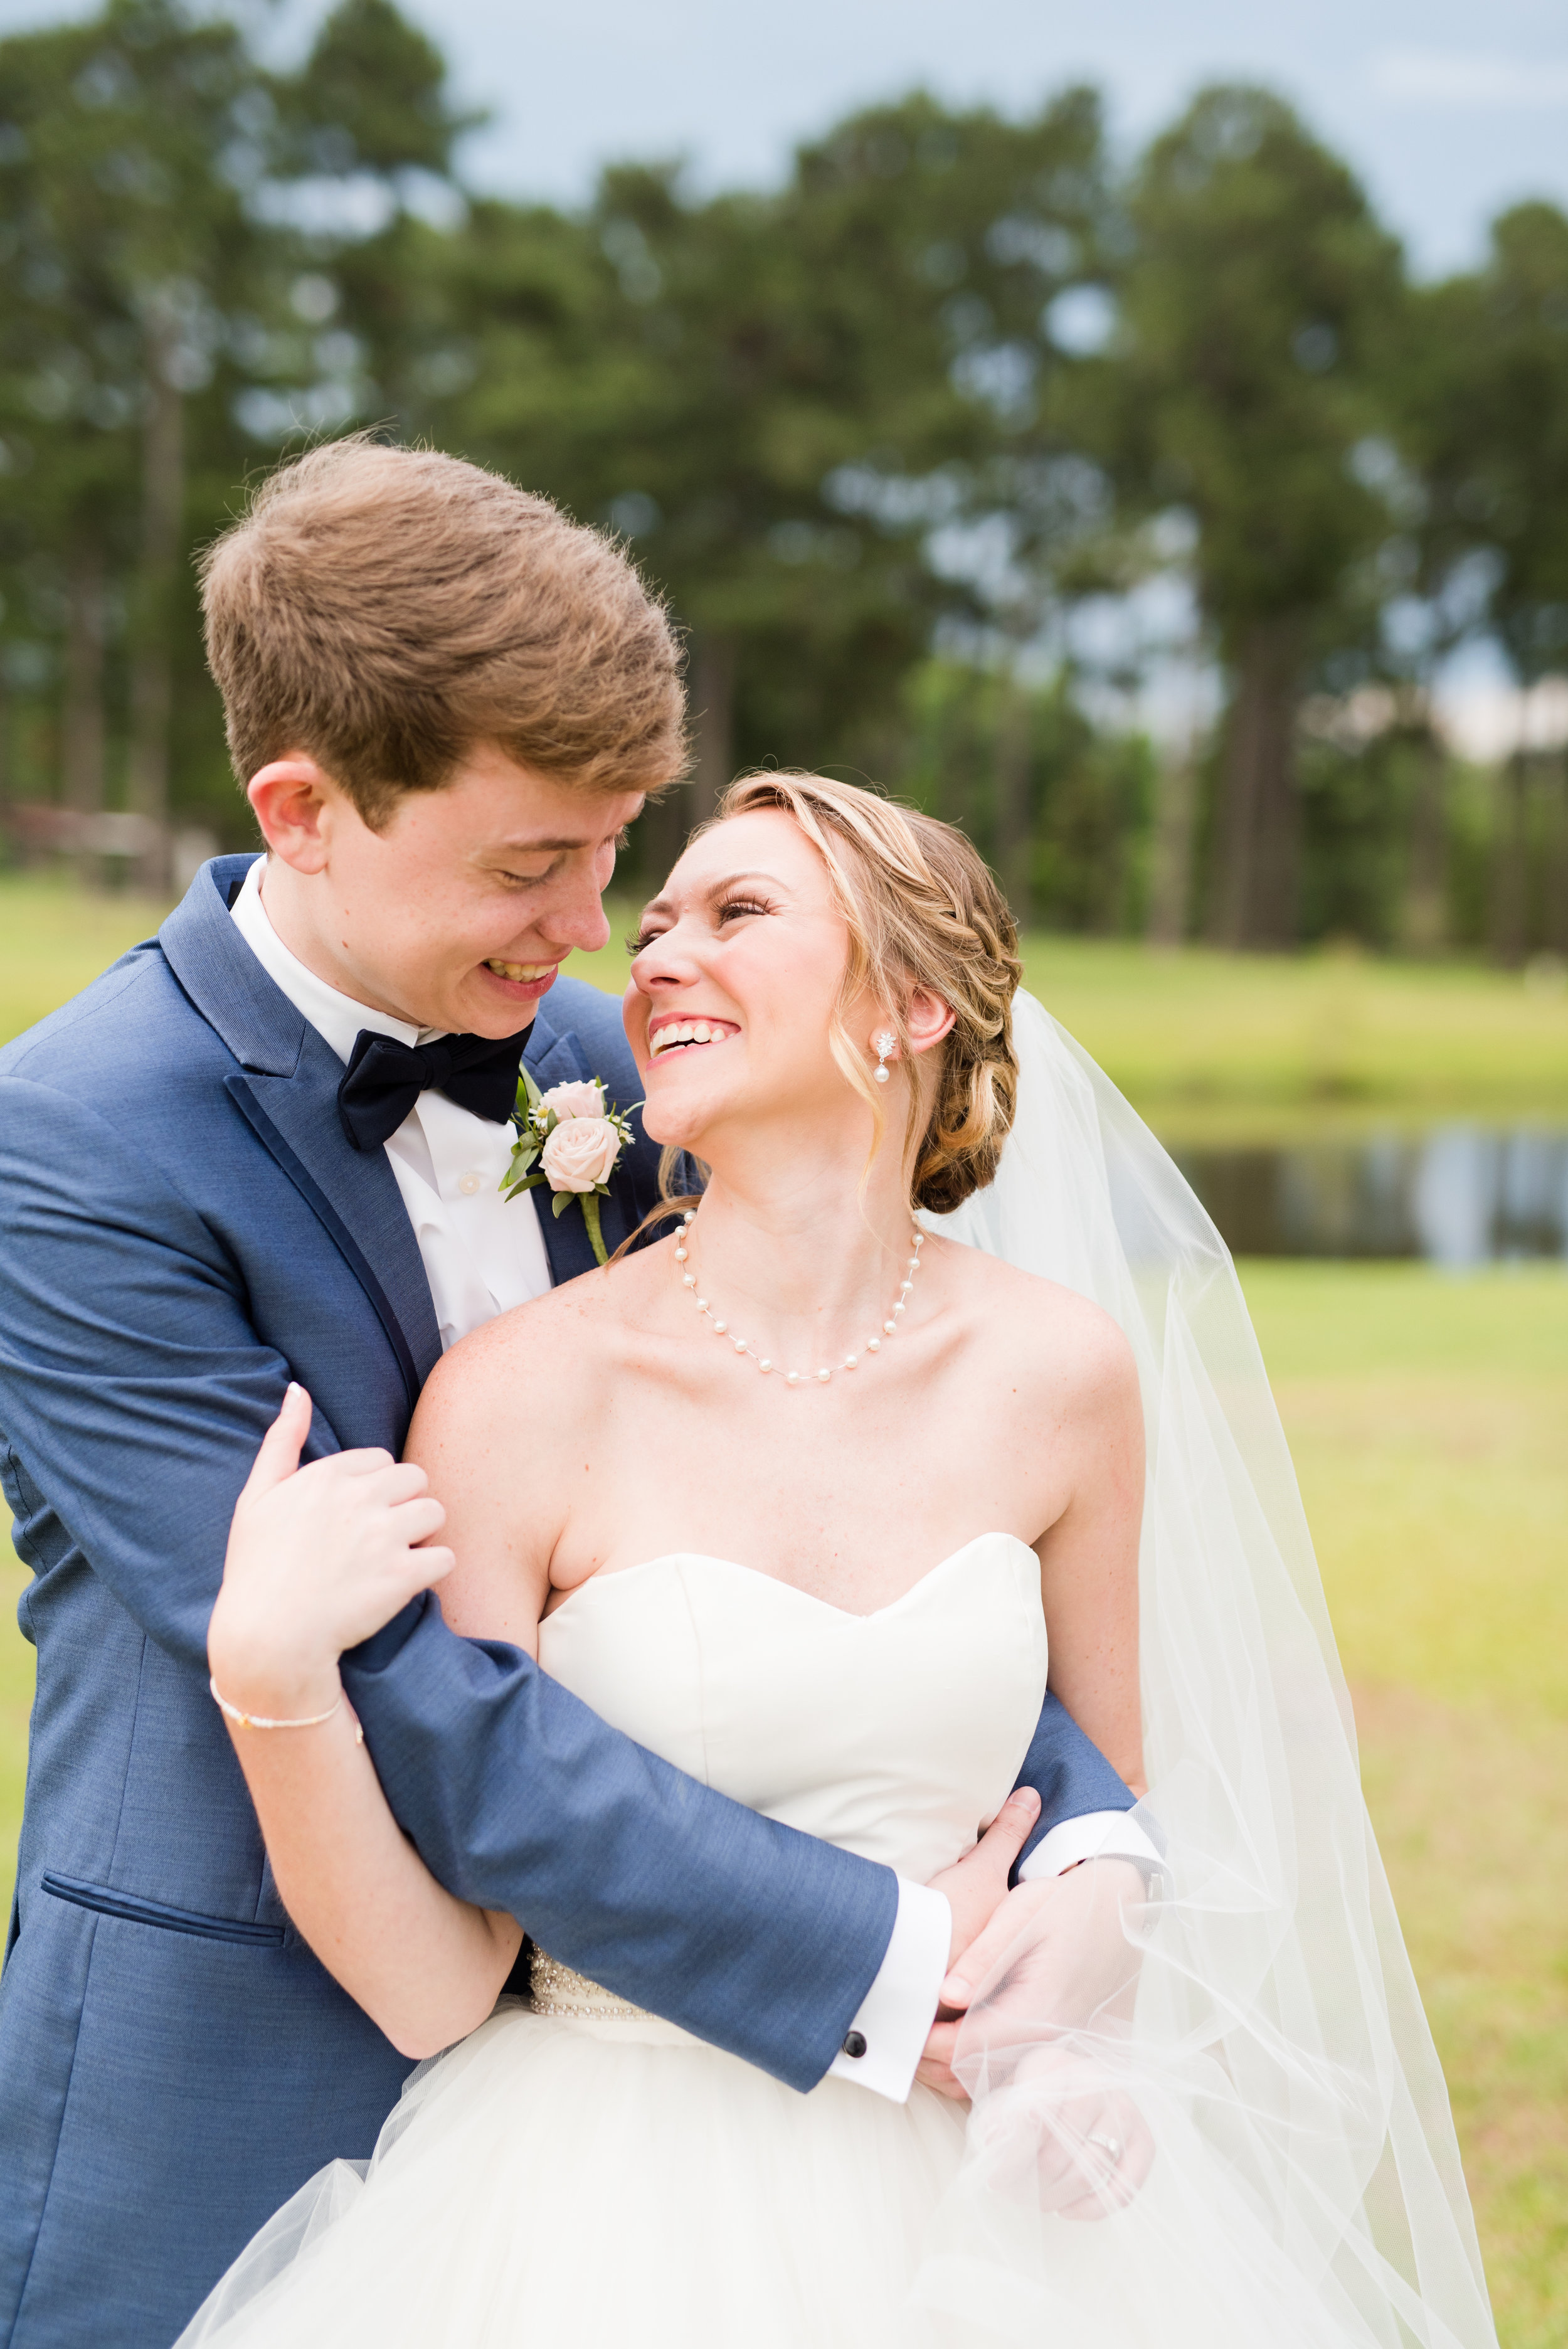 The Barn at Bridlewood wedding in Hattiesburg, Mississippi (MS) in June | Bride and Groom Wedding portraits